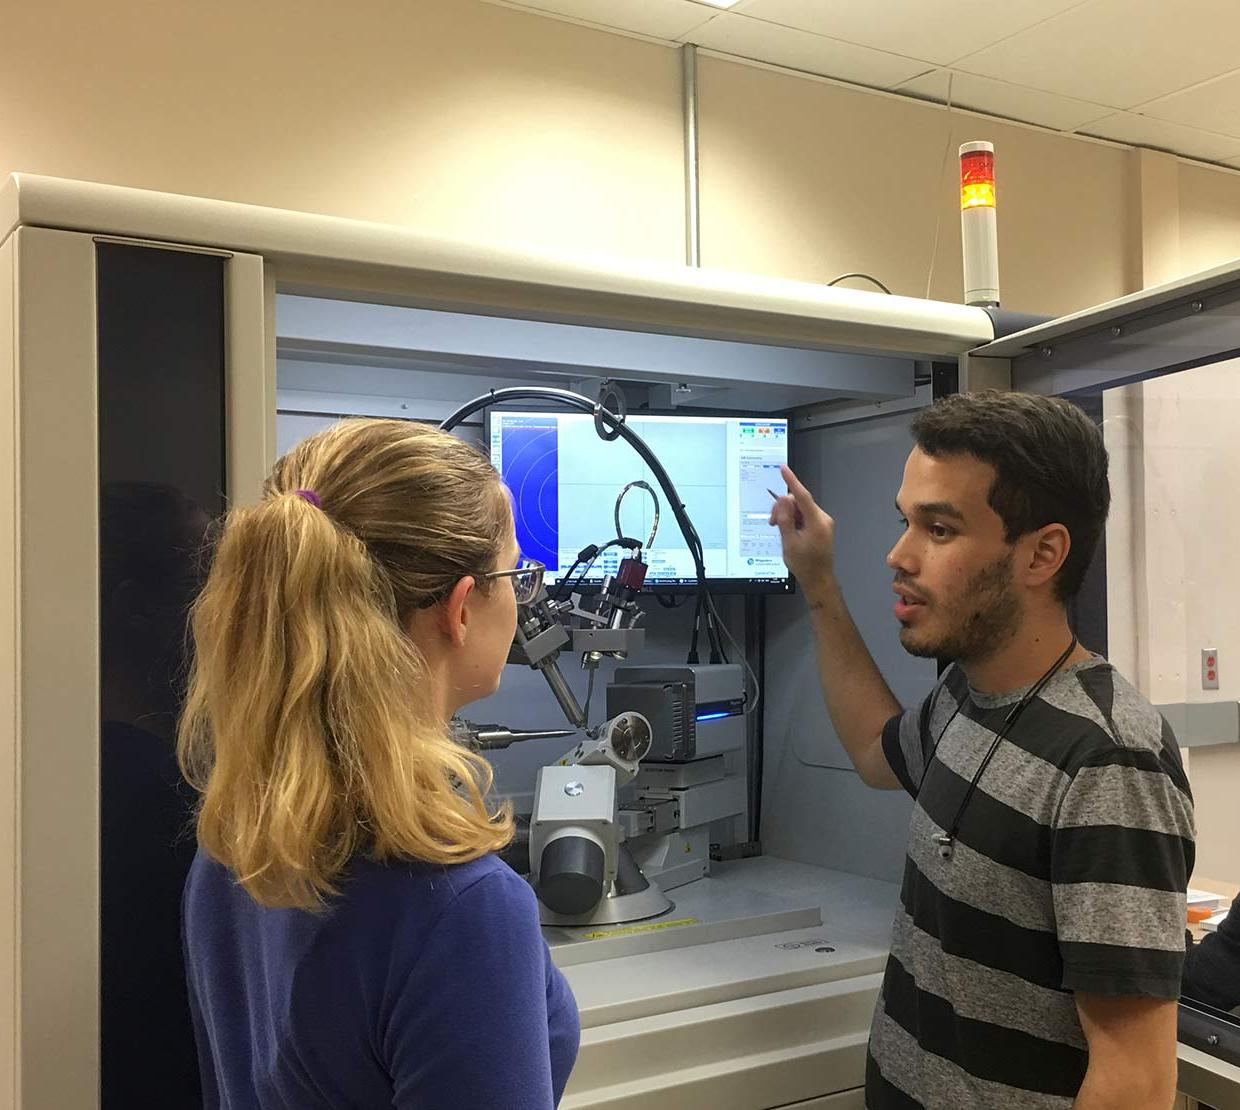 male and female students looking over lab machinery